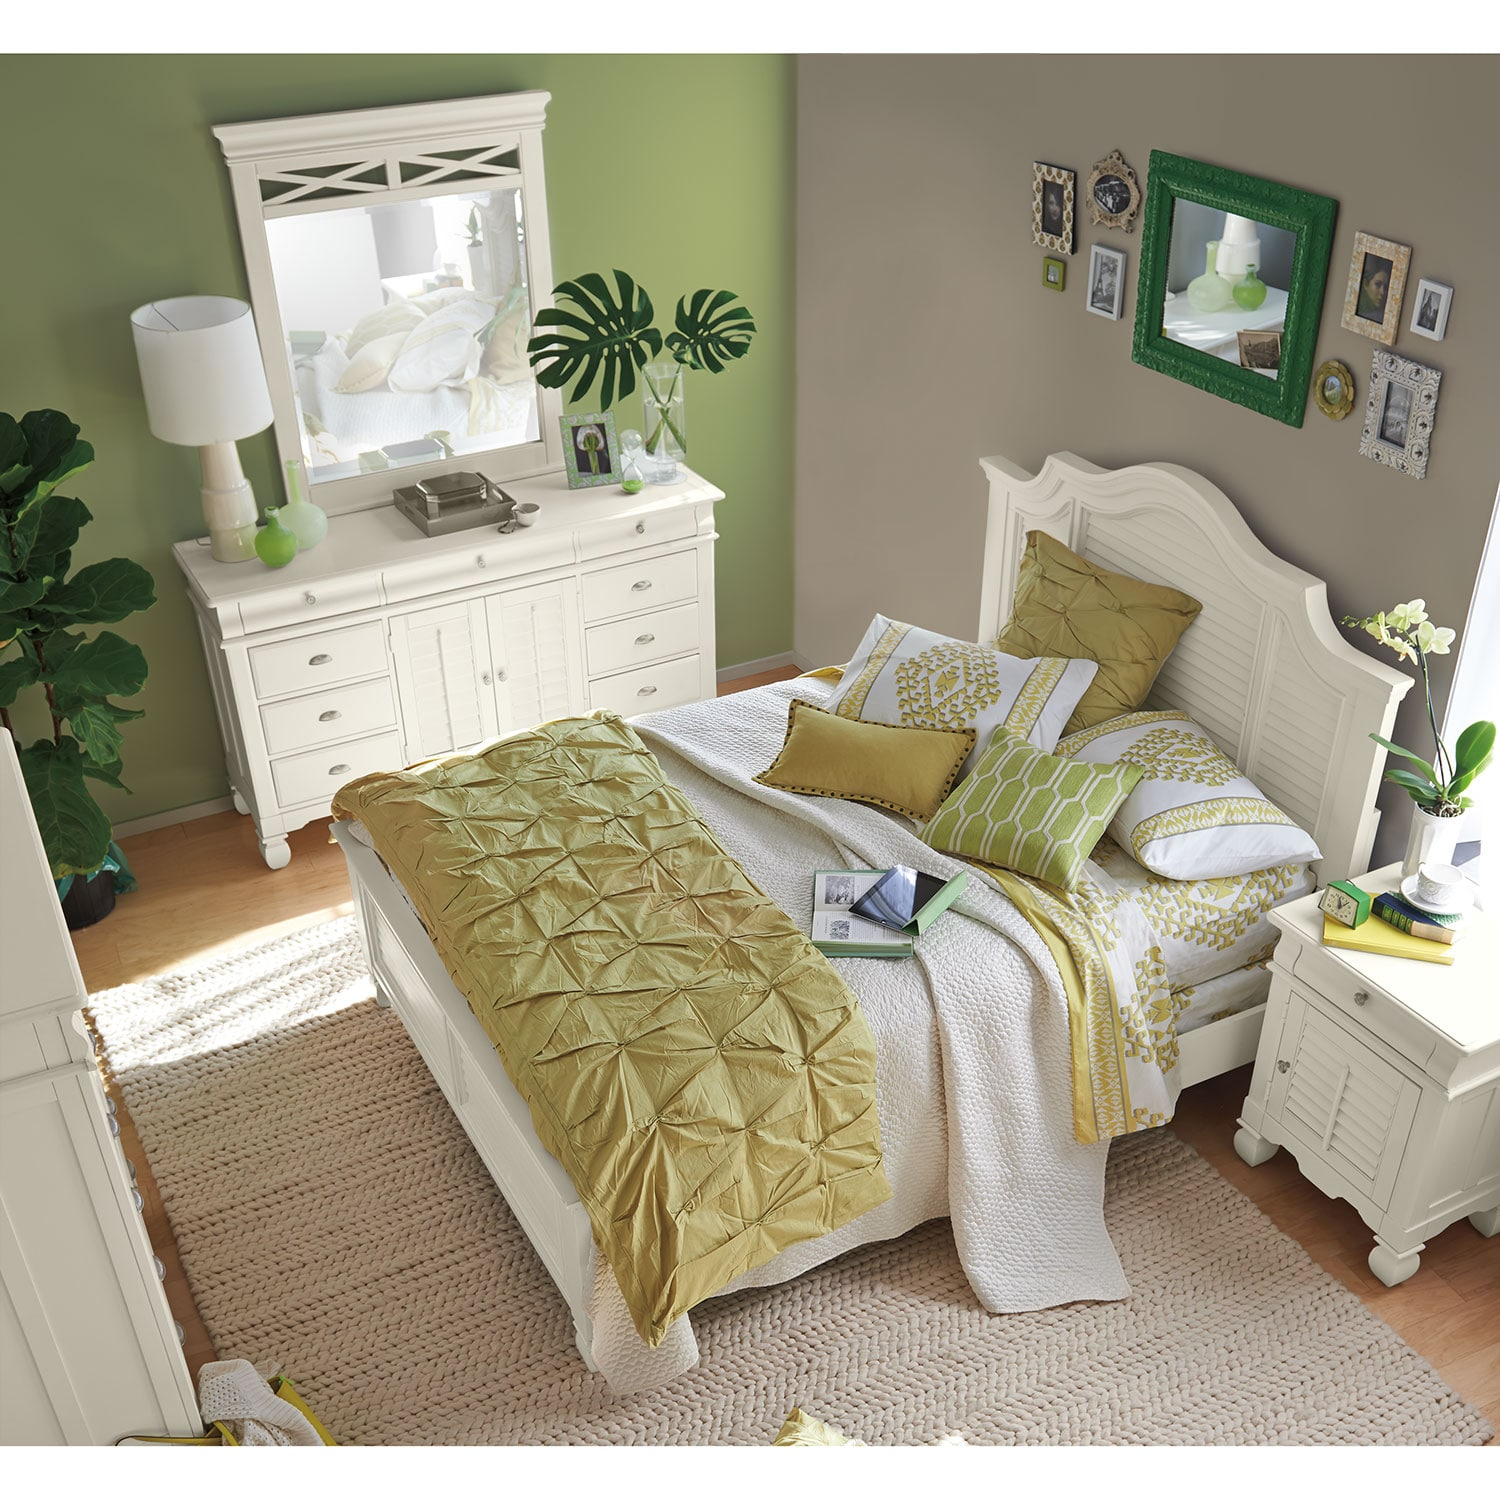 Plantation Cove 5 Piece Queen Panel Bedroom Set   White by American  Signature. Plantation Cove 5 Piece Queen Panel Bedroom Set   White   Value